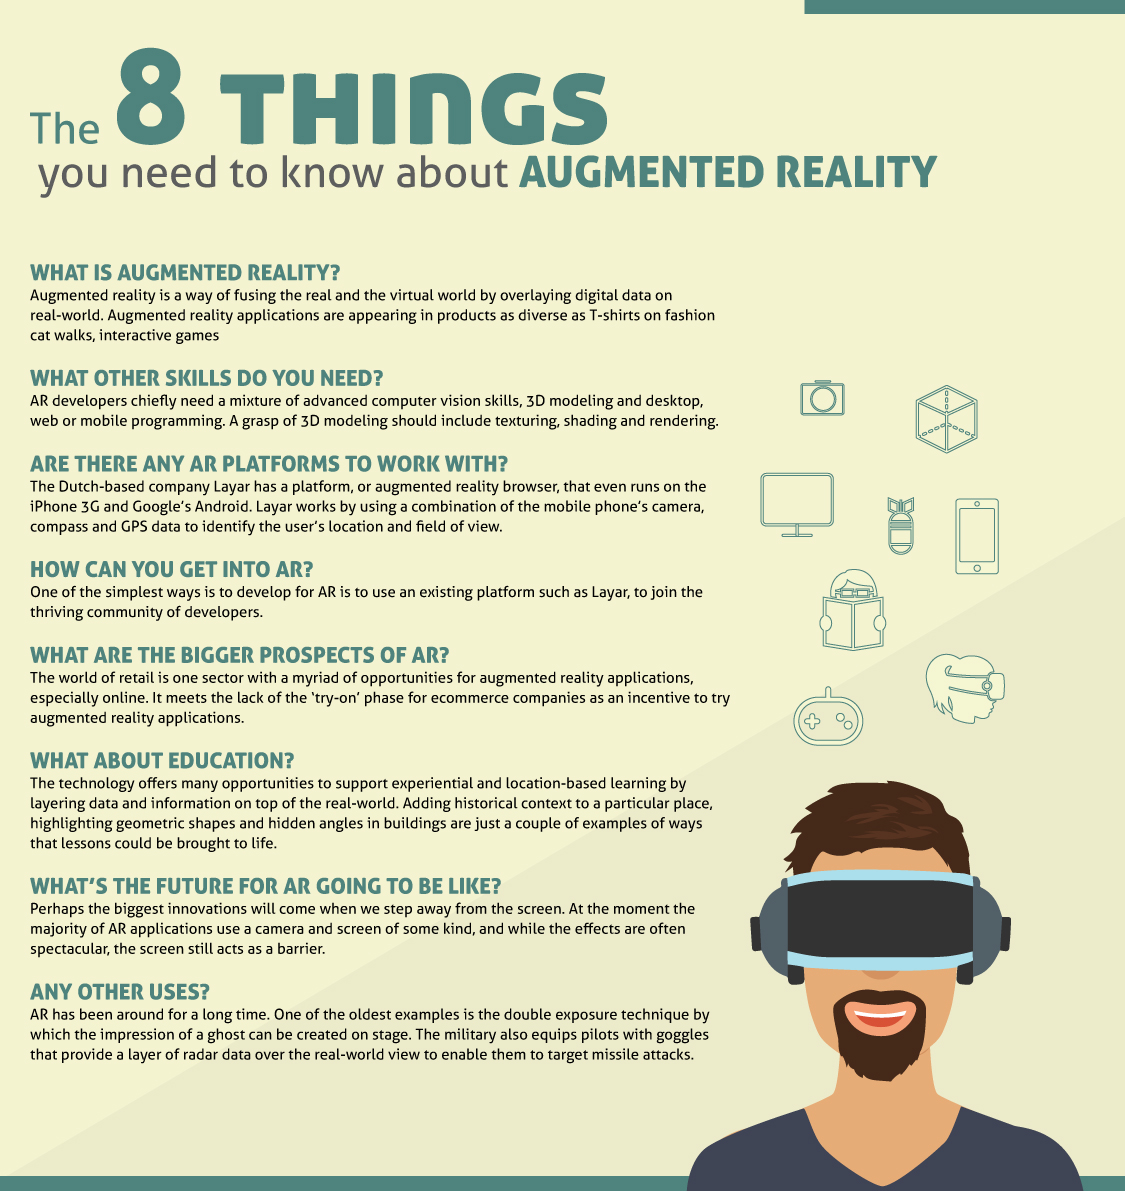 8 Things You Need To Know About AUGMENTED REALITY